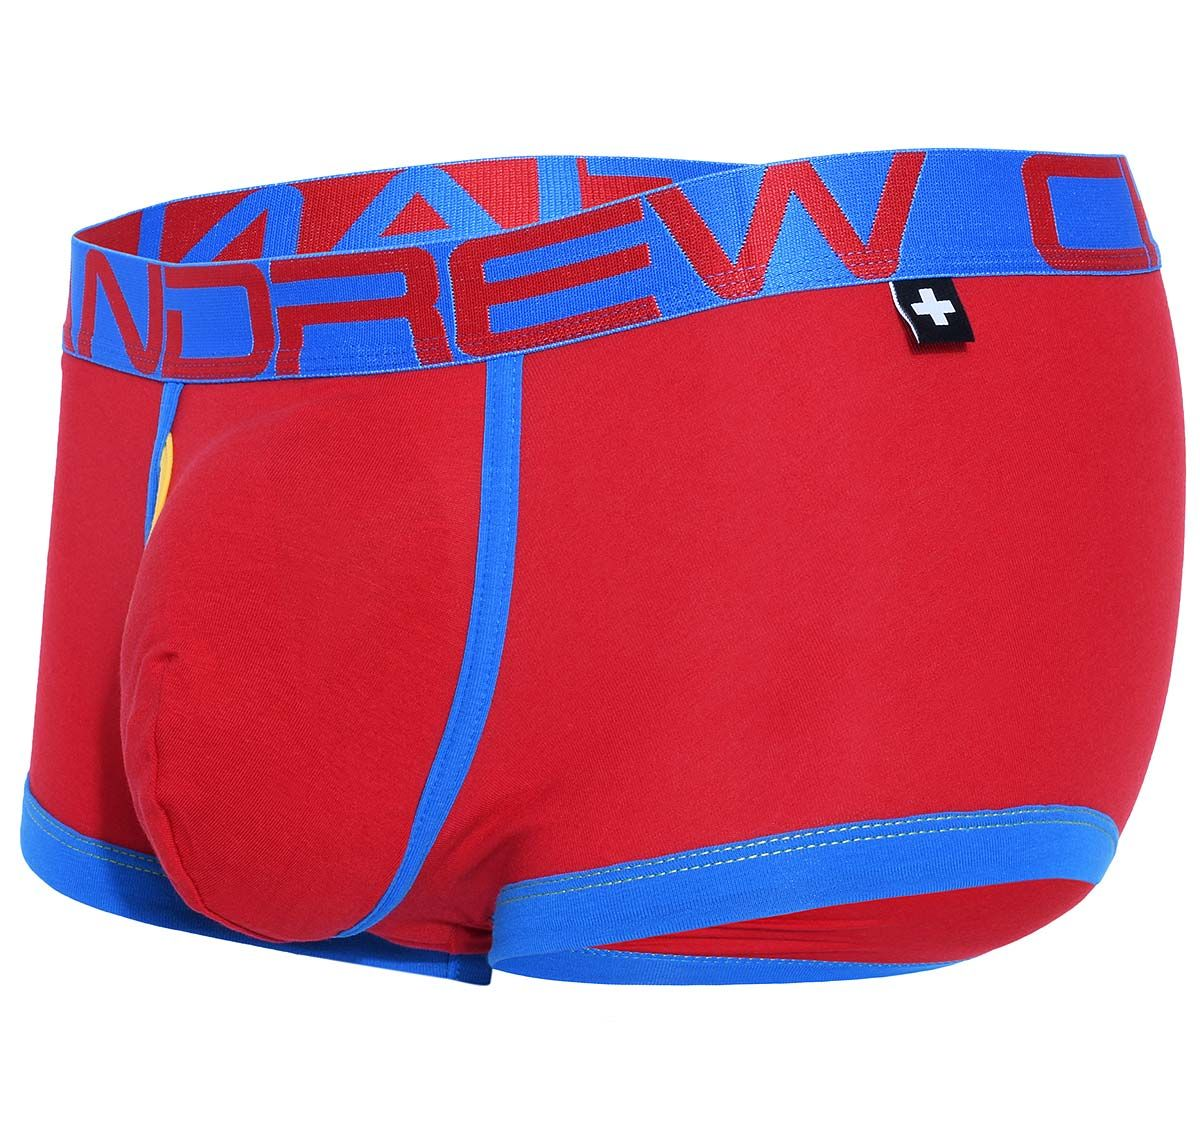 Andrew Christian Boxer FLY Tagless BOXER w/ Almost Naked 91218, rosso